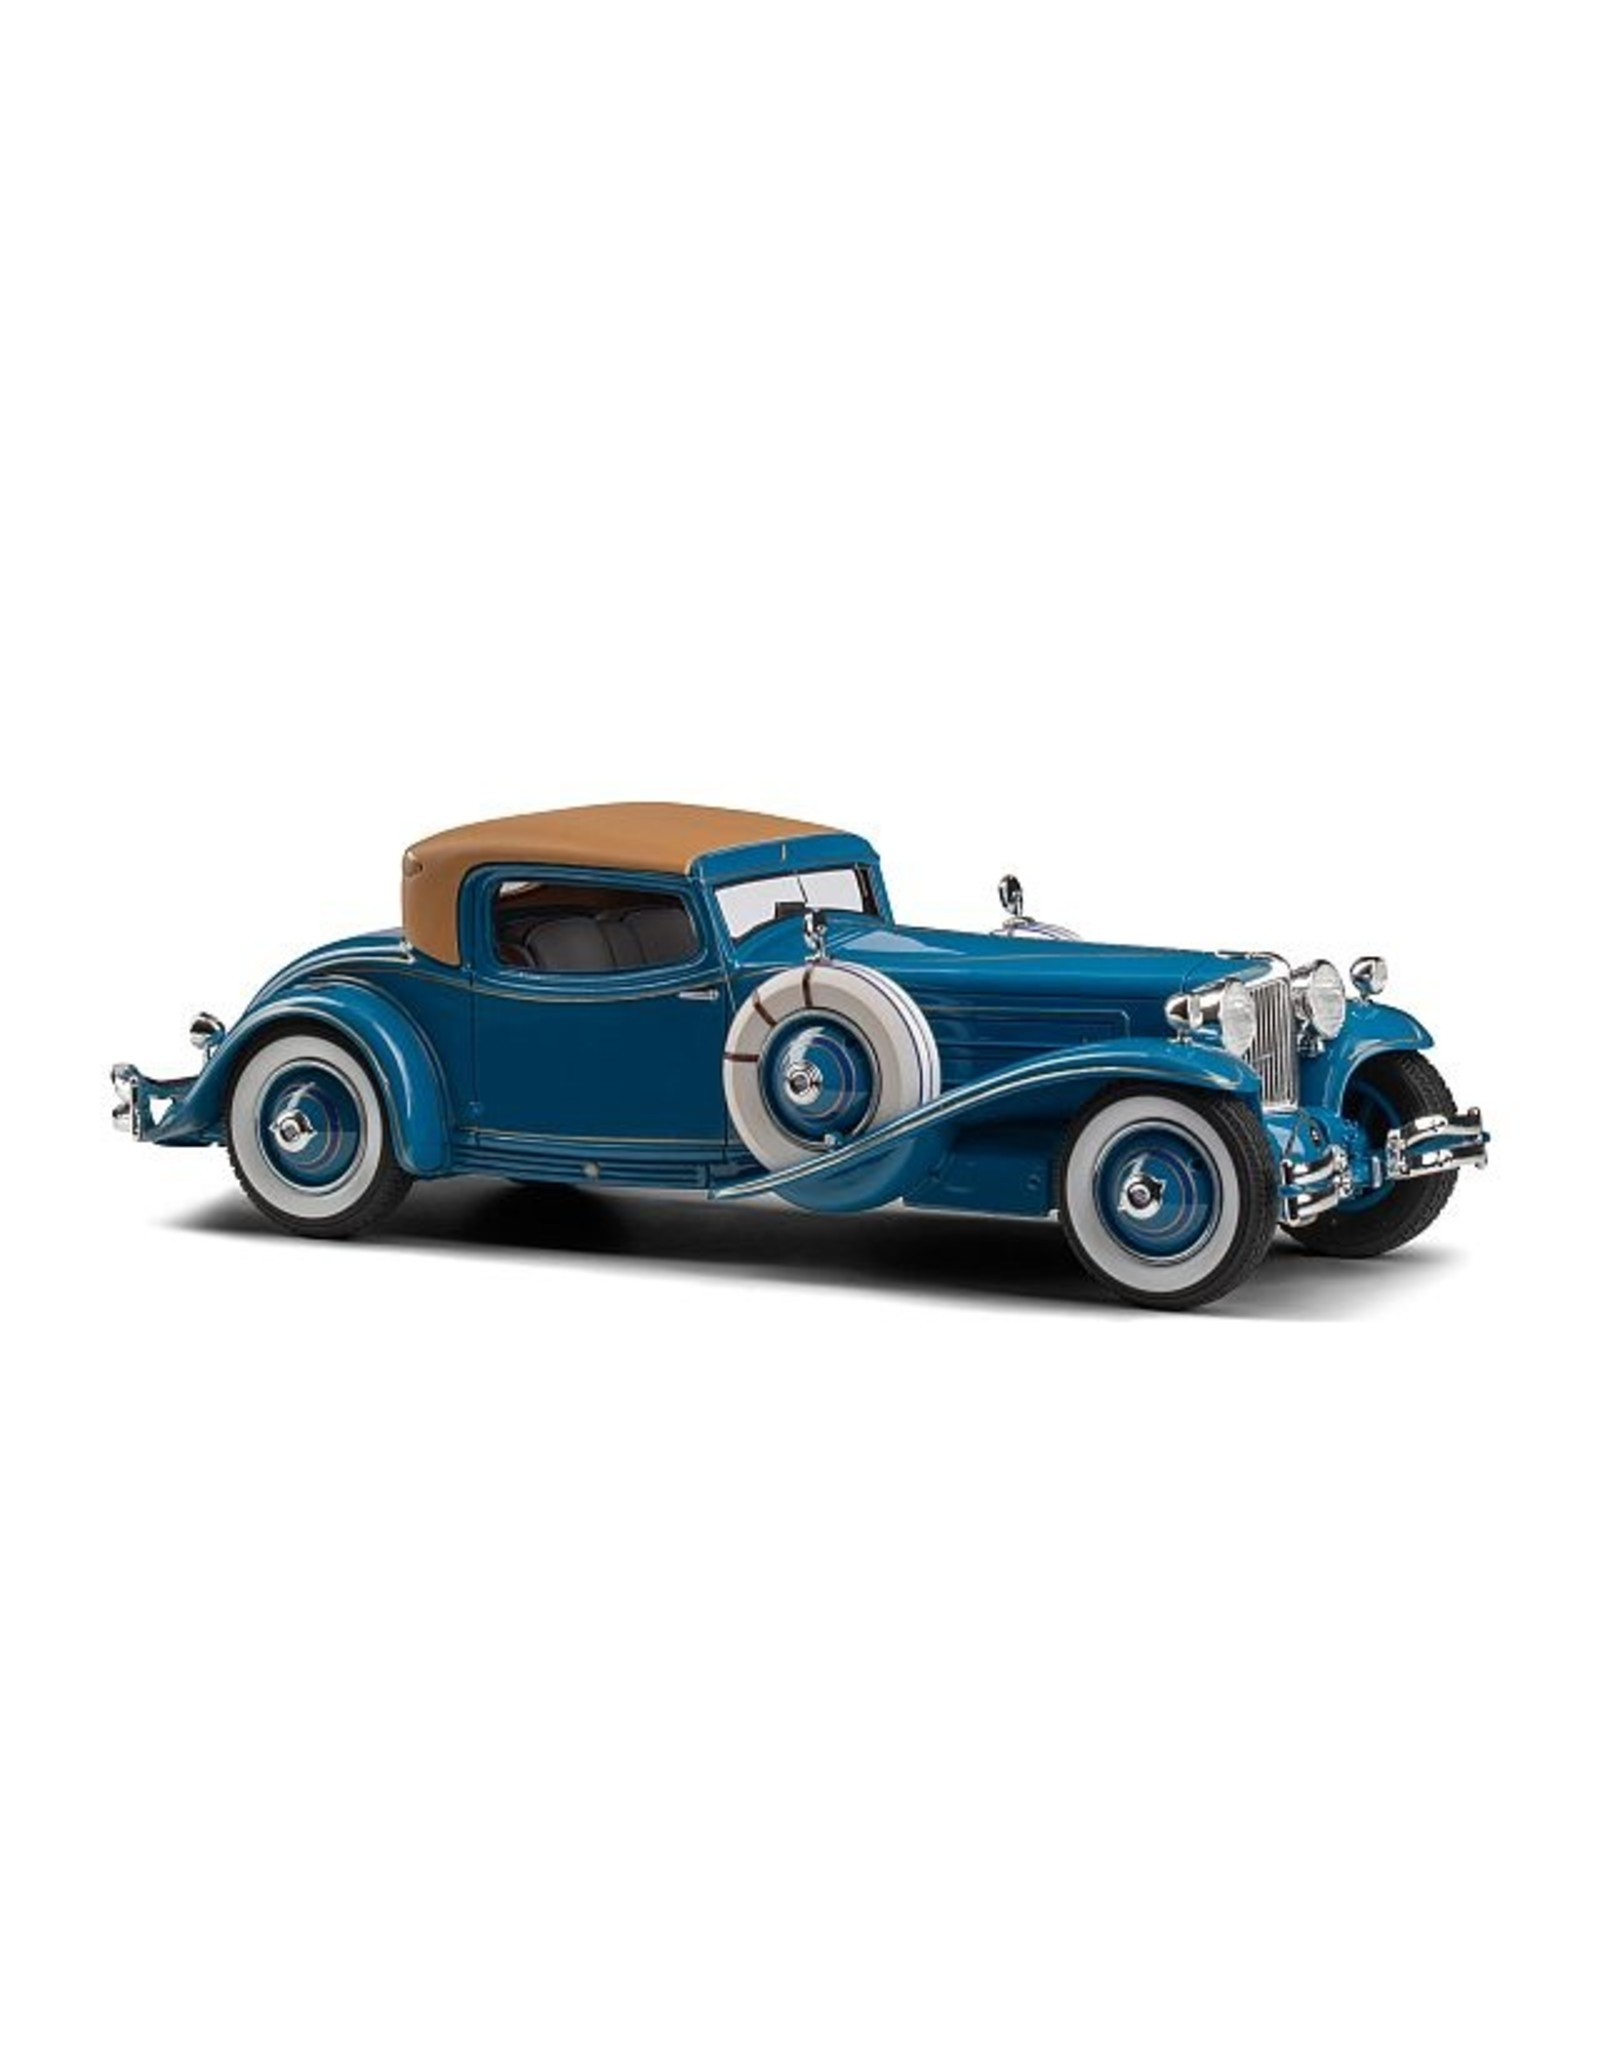 Cord by Hayes Body Company. Cord L-29 Coupe by Hayes(1929).